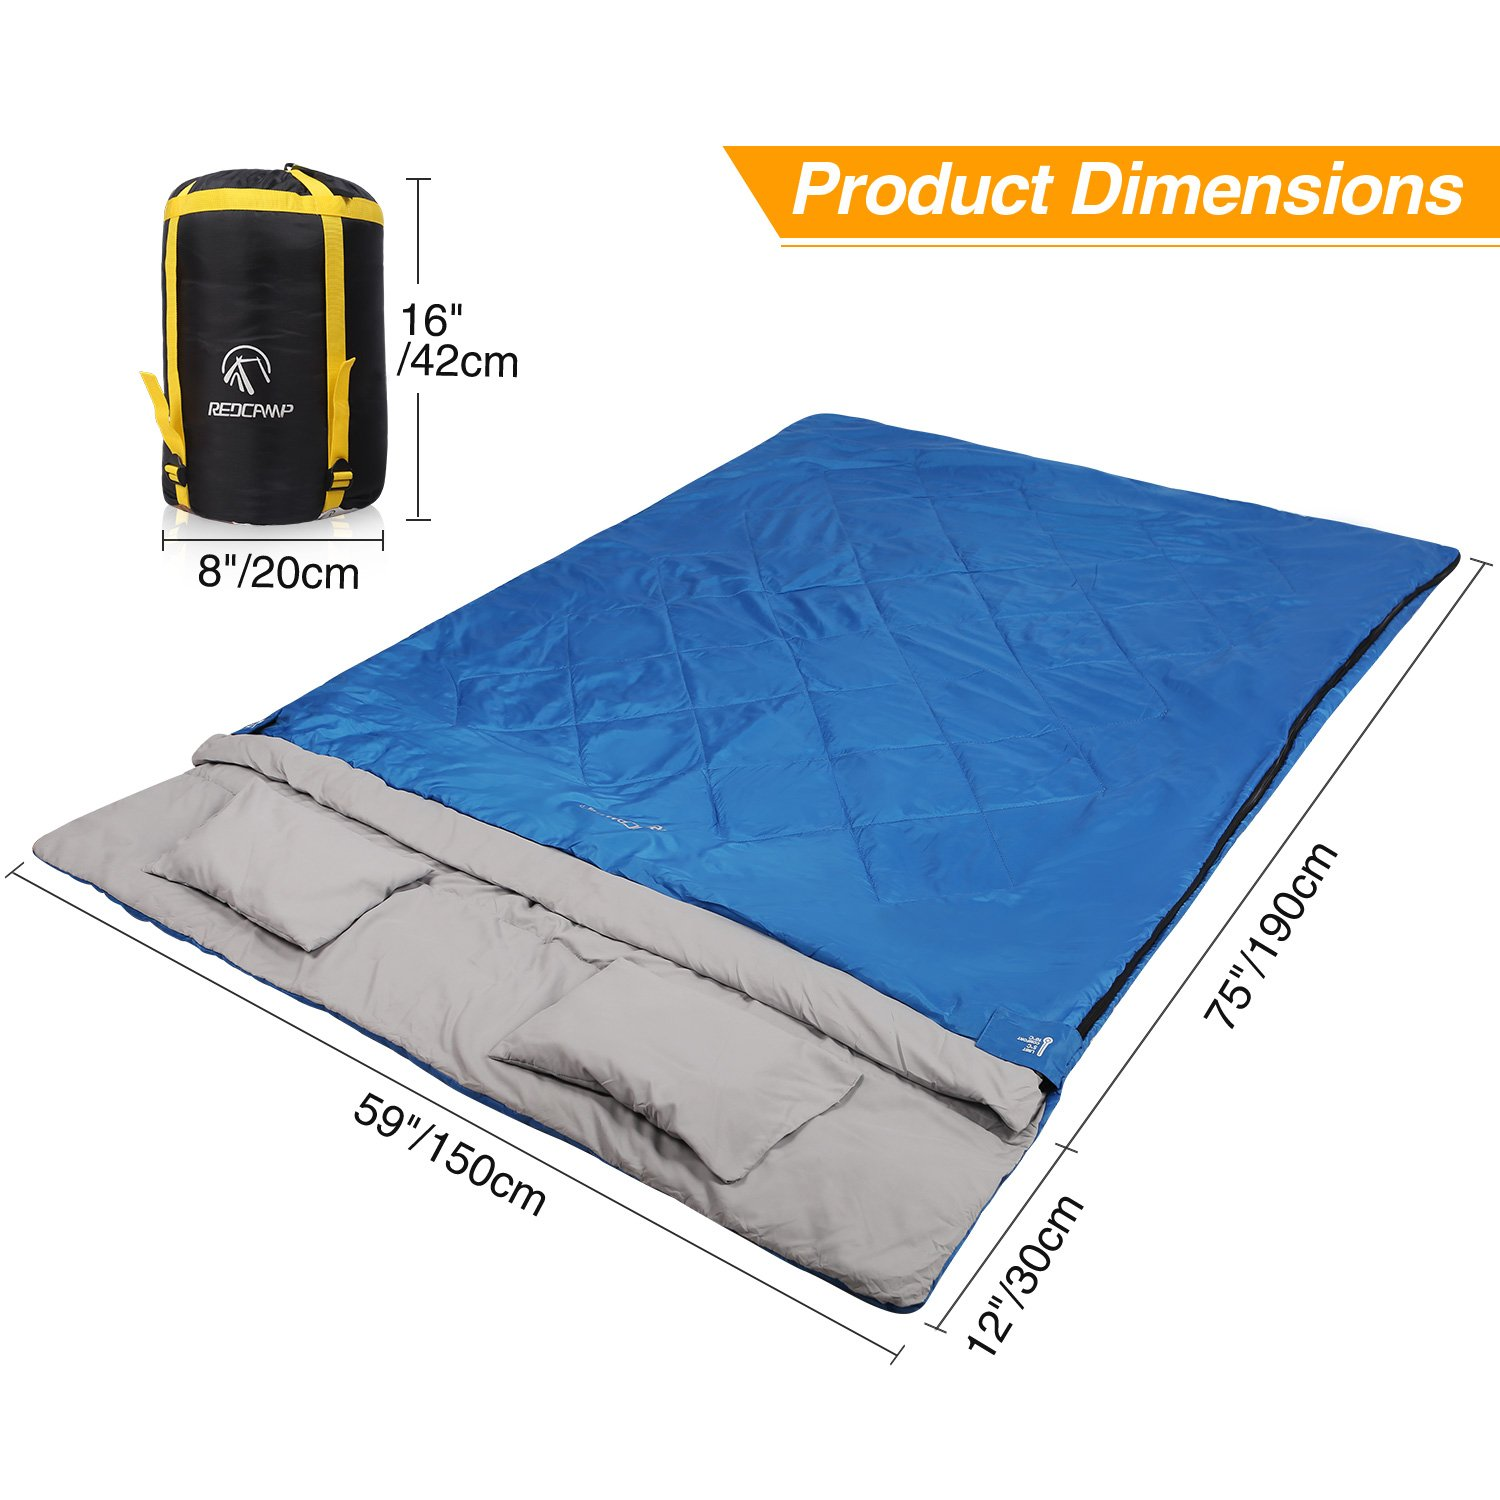 REDCAMP Double Sleeping Bag for Camping,2 Person Sleeping Bags with 2 Pillows, Queen Size Blue 3.3lbs Filling 75 12 x 59